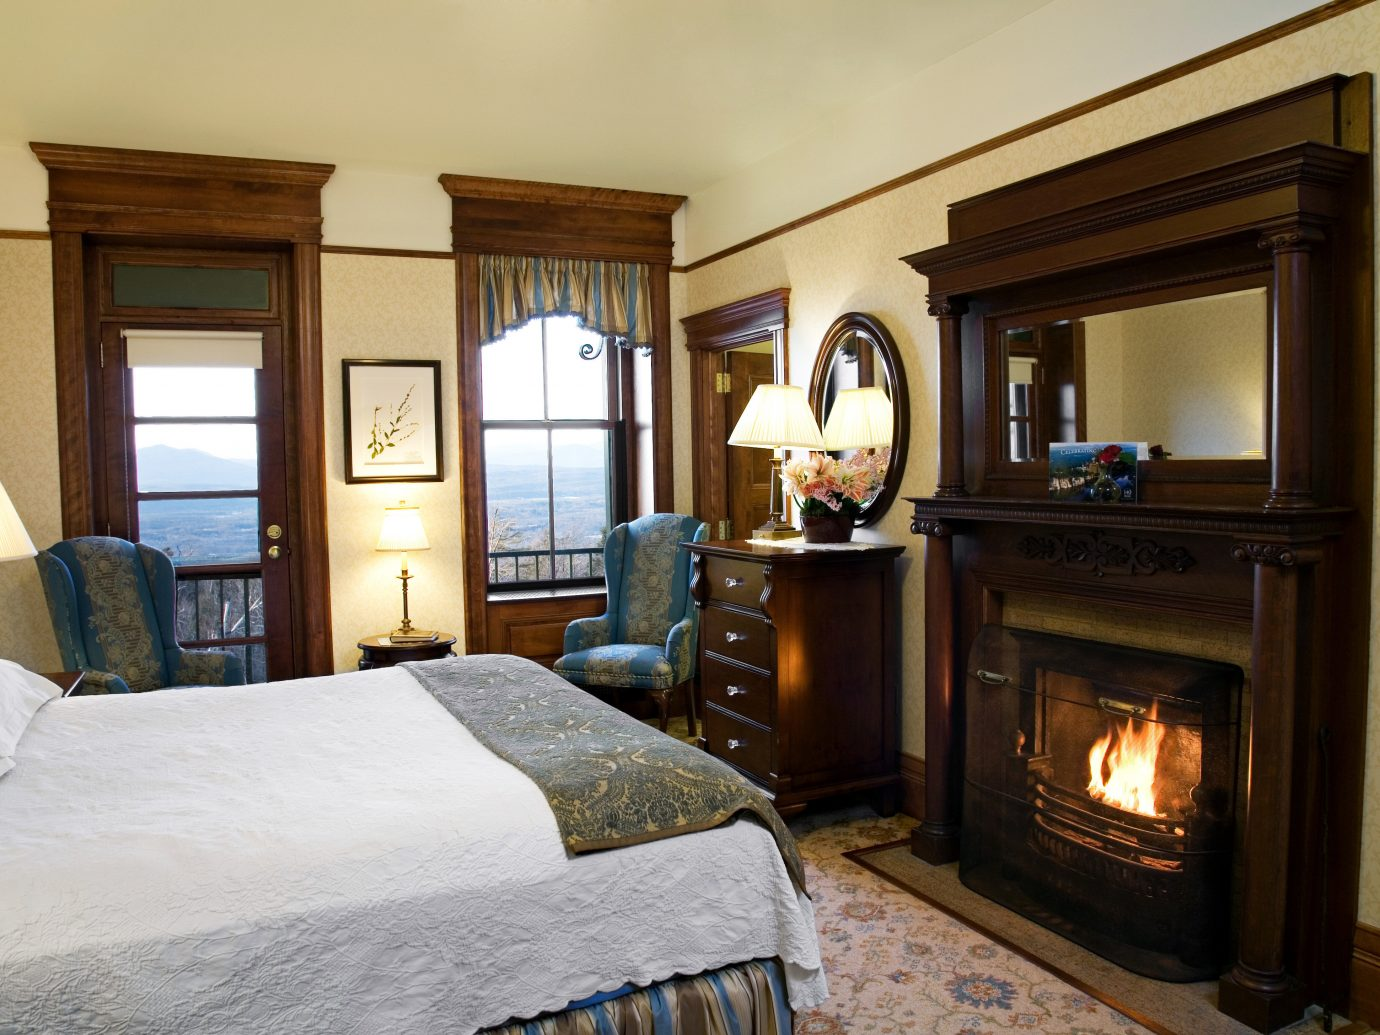 Bedroom Classic Fireplace Hotels Lakes + Rivers Luxury Mountains New York Outdoor Activities Resort Romance Romantic Hotels indoor wall room bed floor property estate home house living room Suite cottage real estate interior design mansion Villa farmhouse apartment decorated